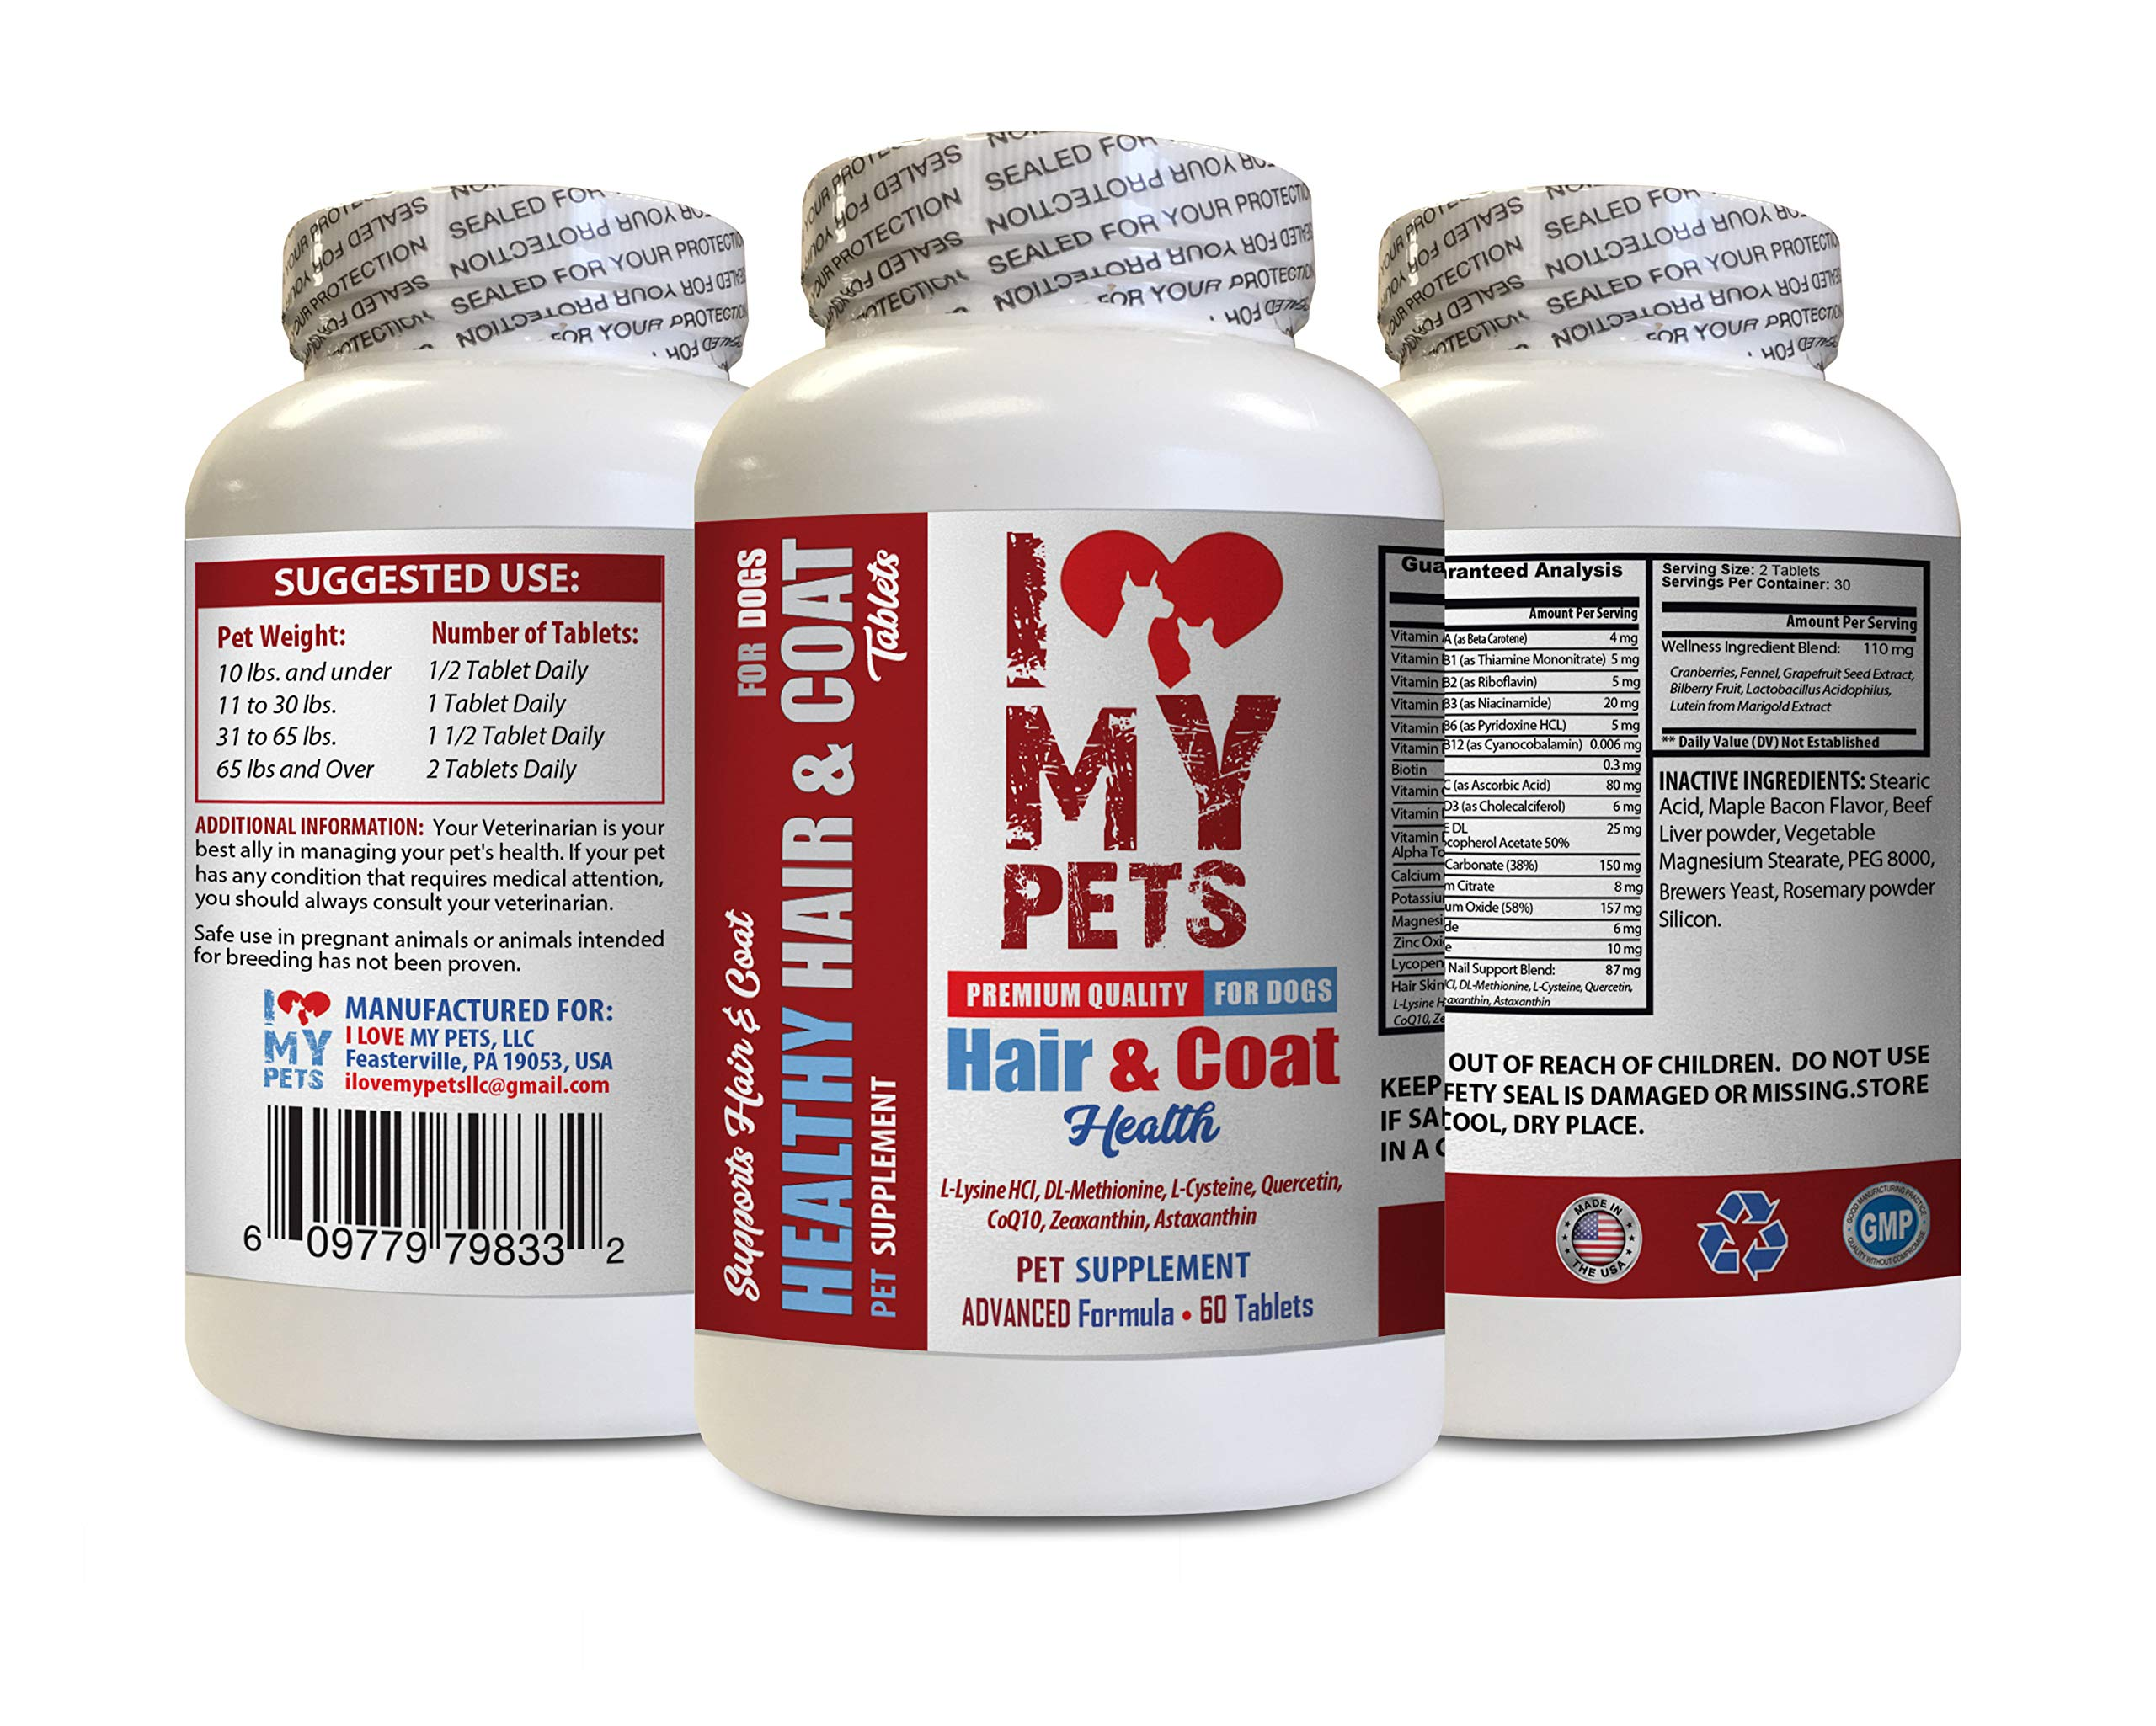 I LOVE MY PETS LLC Dog Immune Treats - Dog Healthy Hair and Coat - Premium Formula - Chews - Vitamin e for Dogs Skin - 60 Treats (1 Bottle) by I LOVE MY PETS LLC